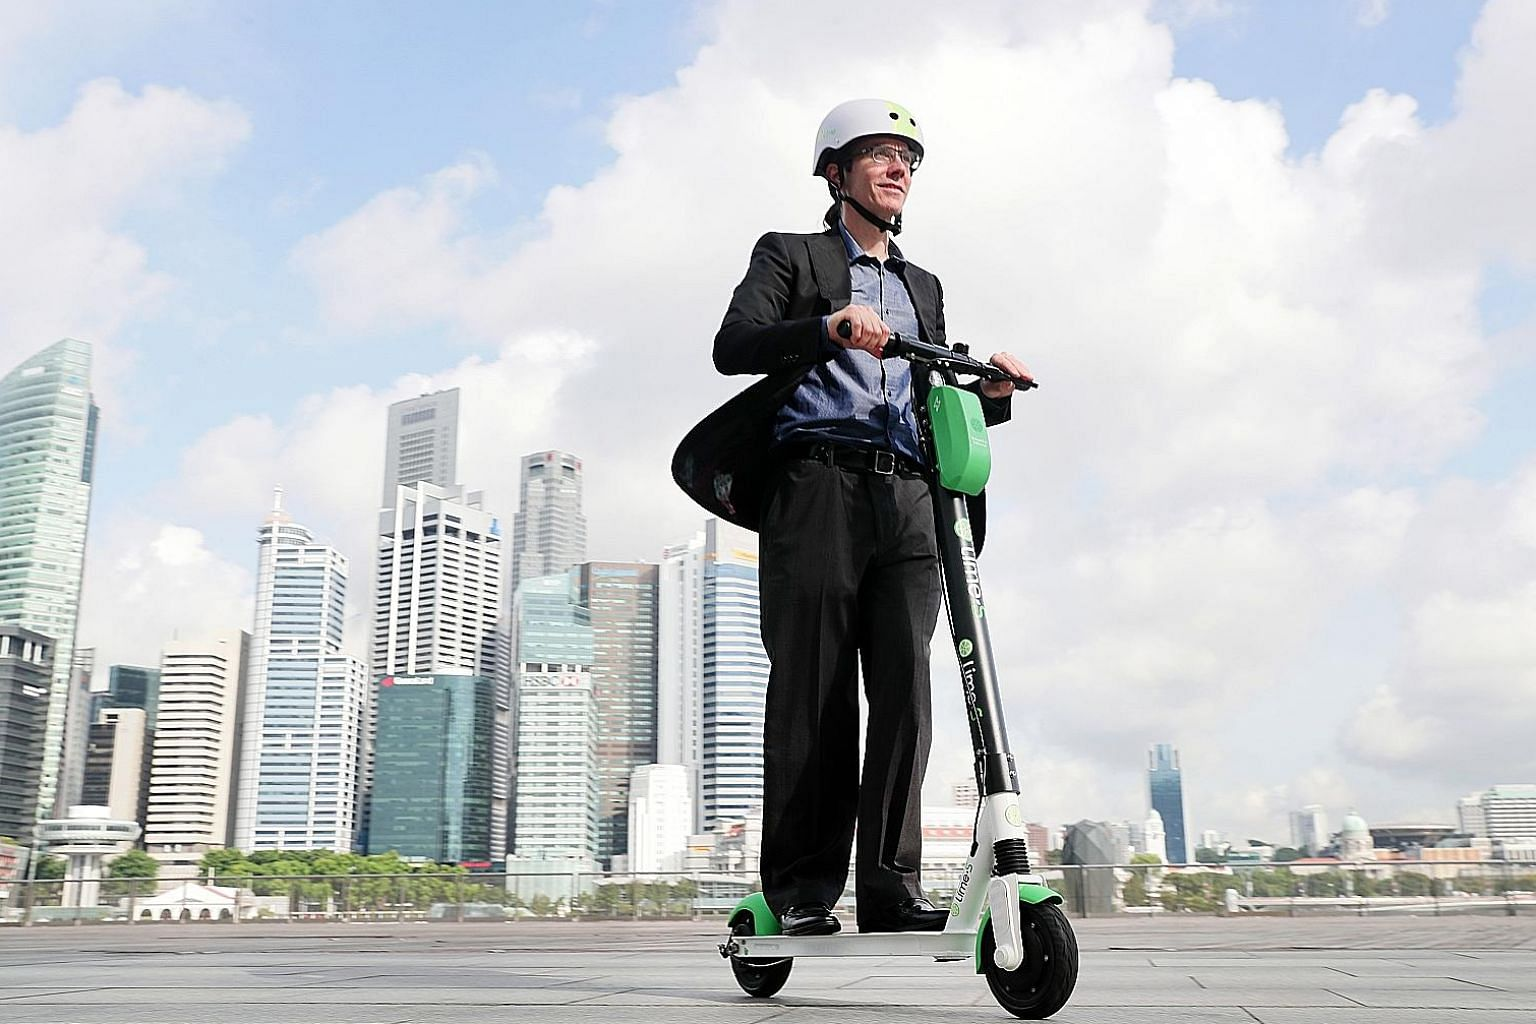 Lime chief operating officer Joe Kraus says e-scooters will be a critical part of the transportation landscape in the future.